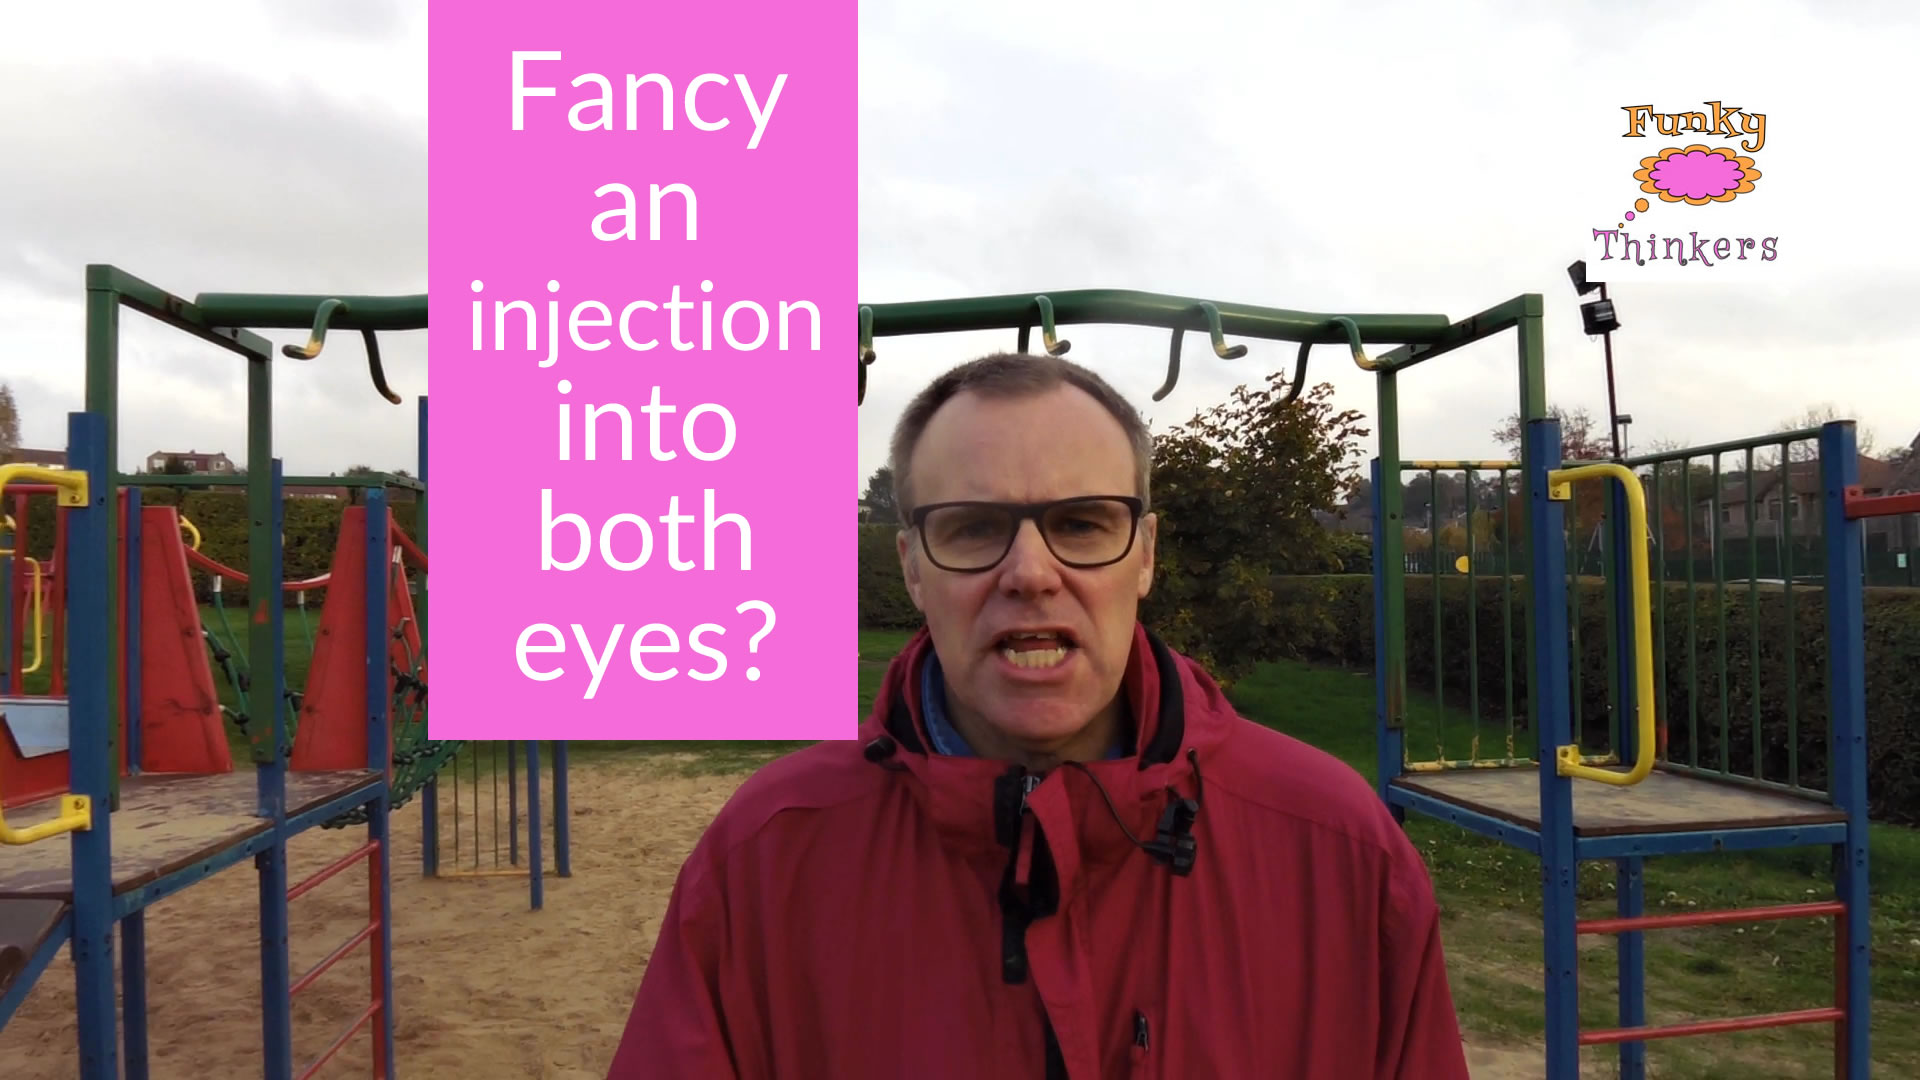 fancy an injection into both eyes